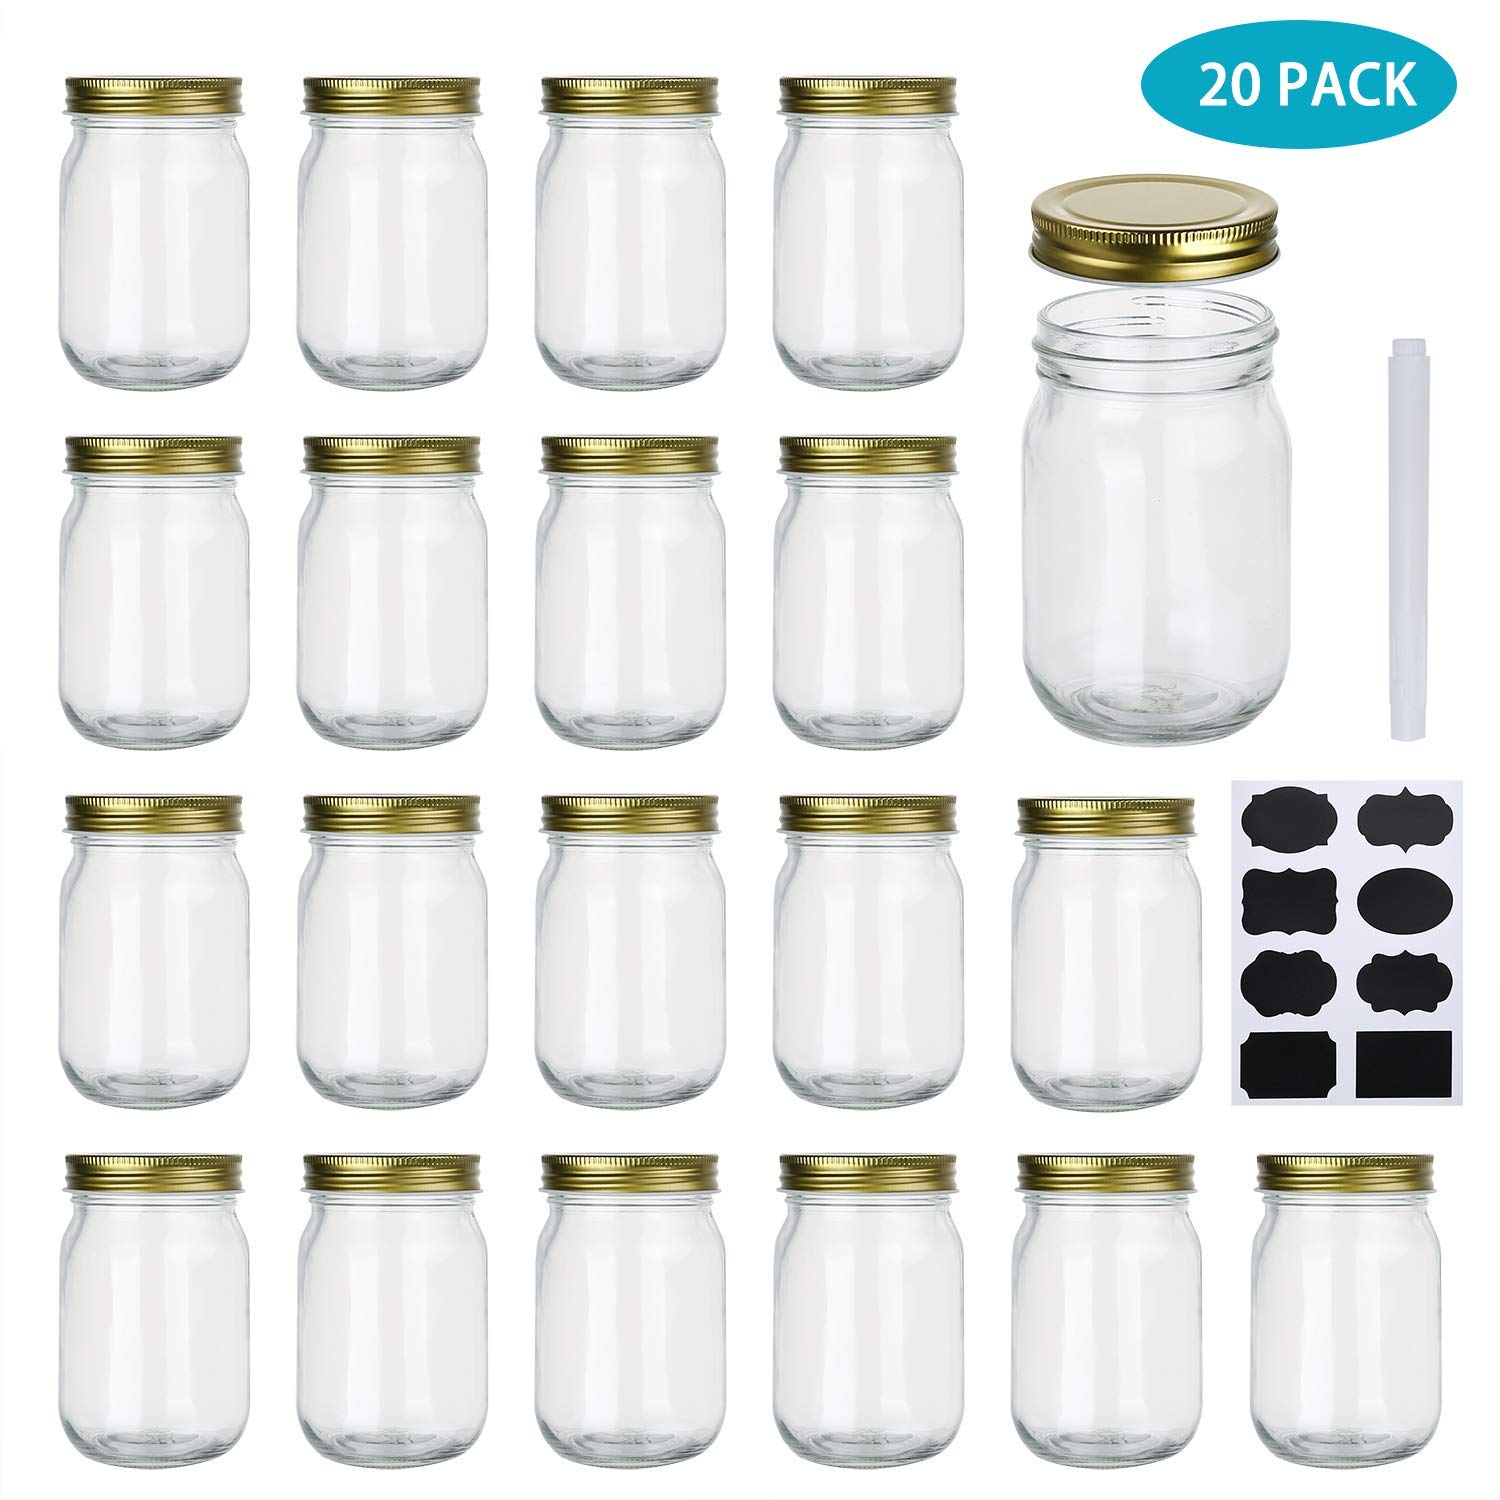 Encheng 12 oz Glass Jars With Lids,Ball Wide Mouth Mason Jars For Storage,Canning Jars For Caviar,Herb,Jelly,Jams,Honey,Dishware Safe,Set Of 20 ...